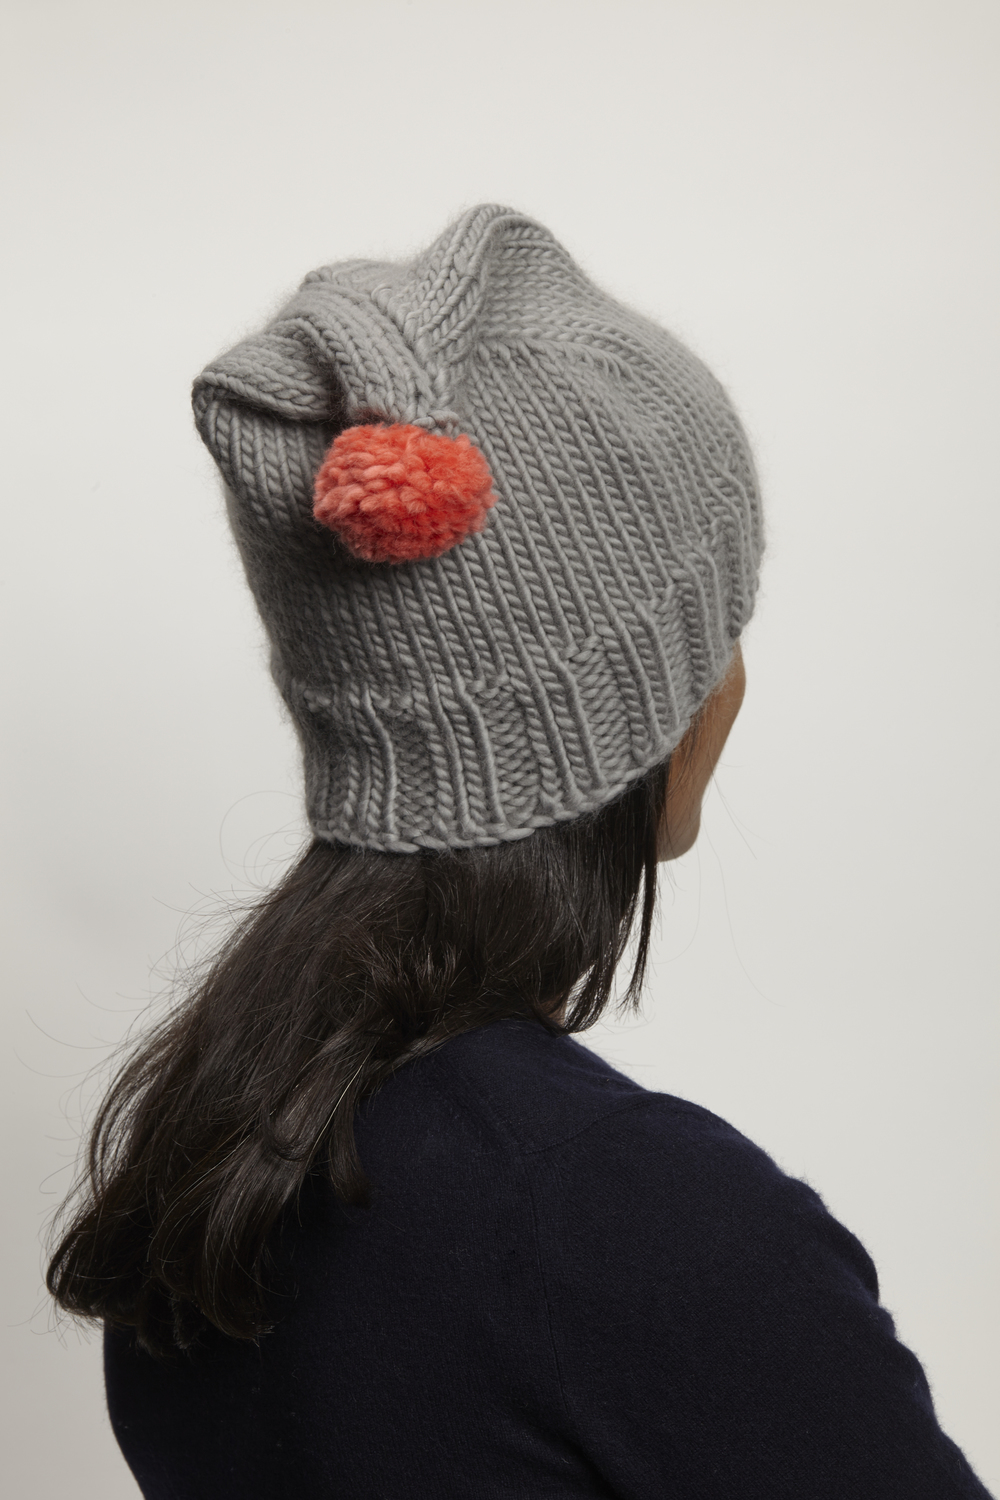 One of many ideas: grey hat - coral pompom